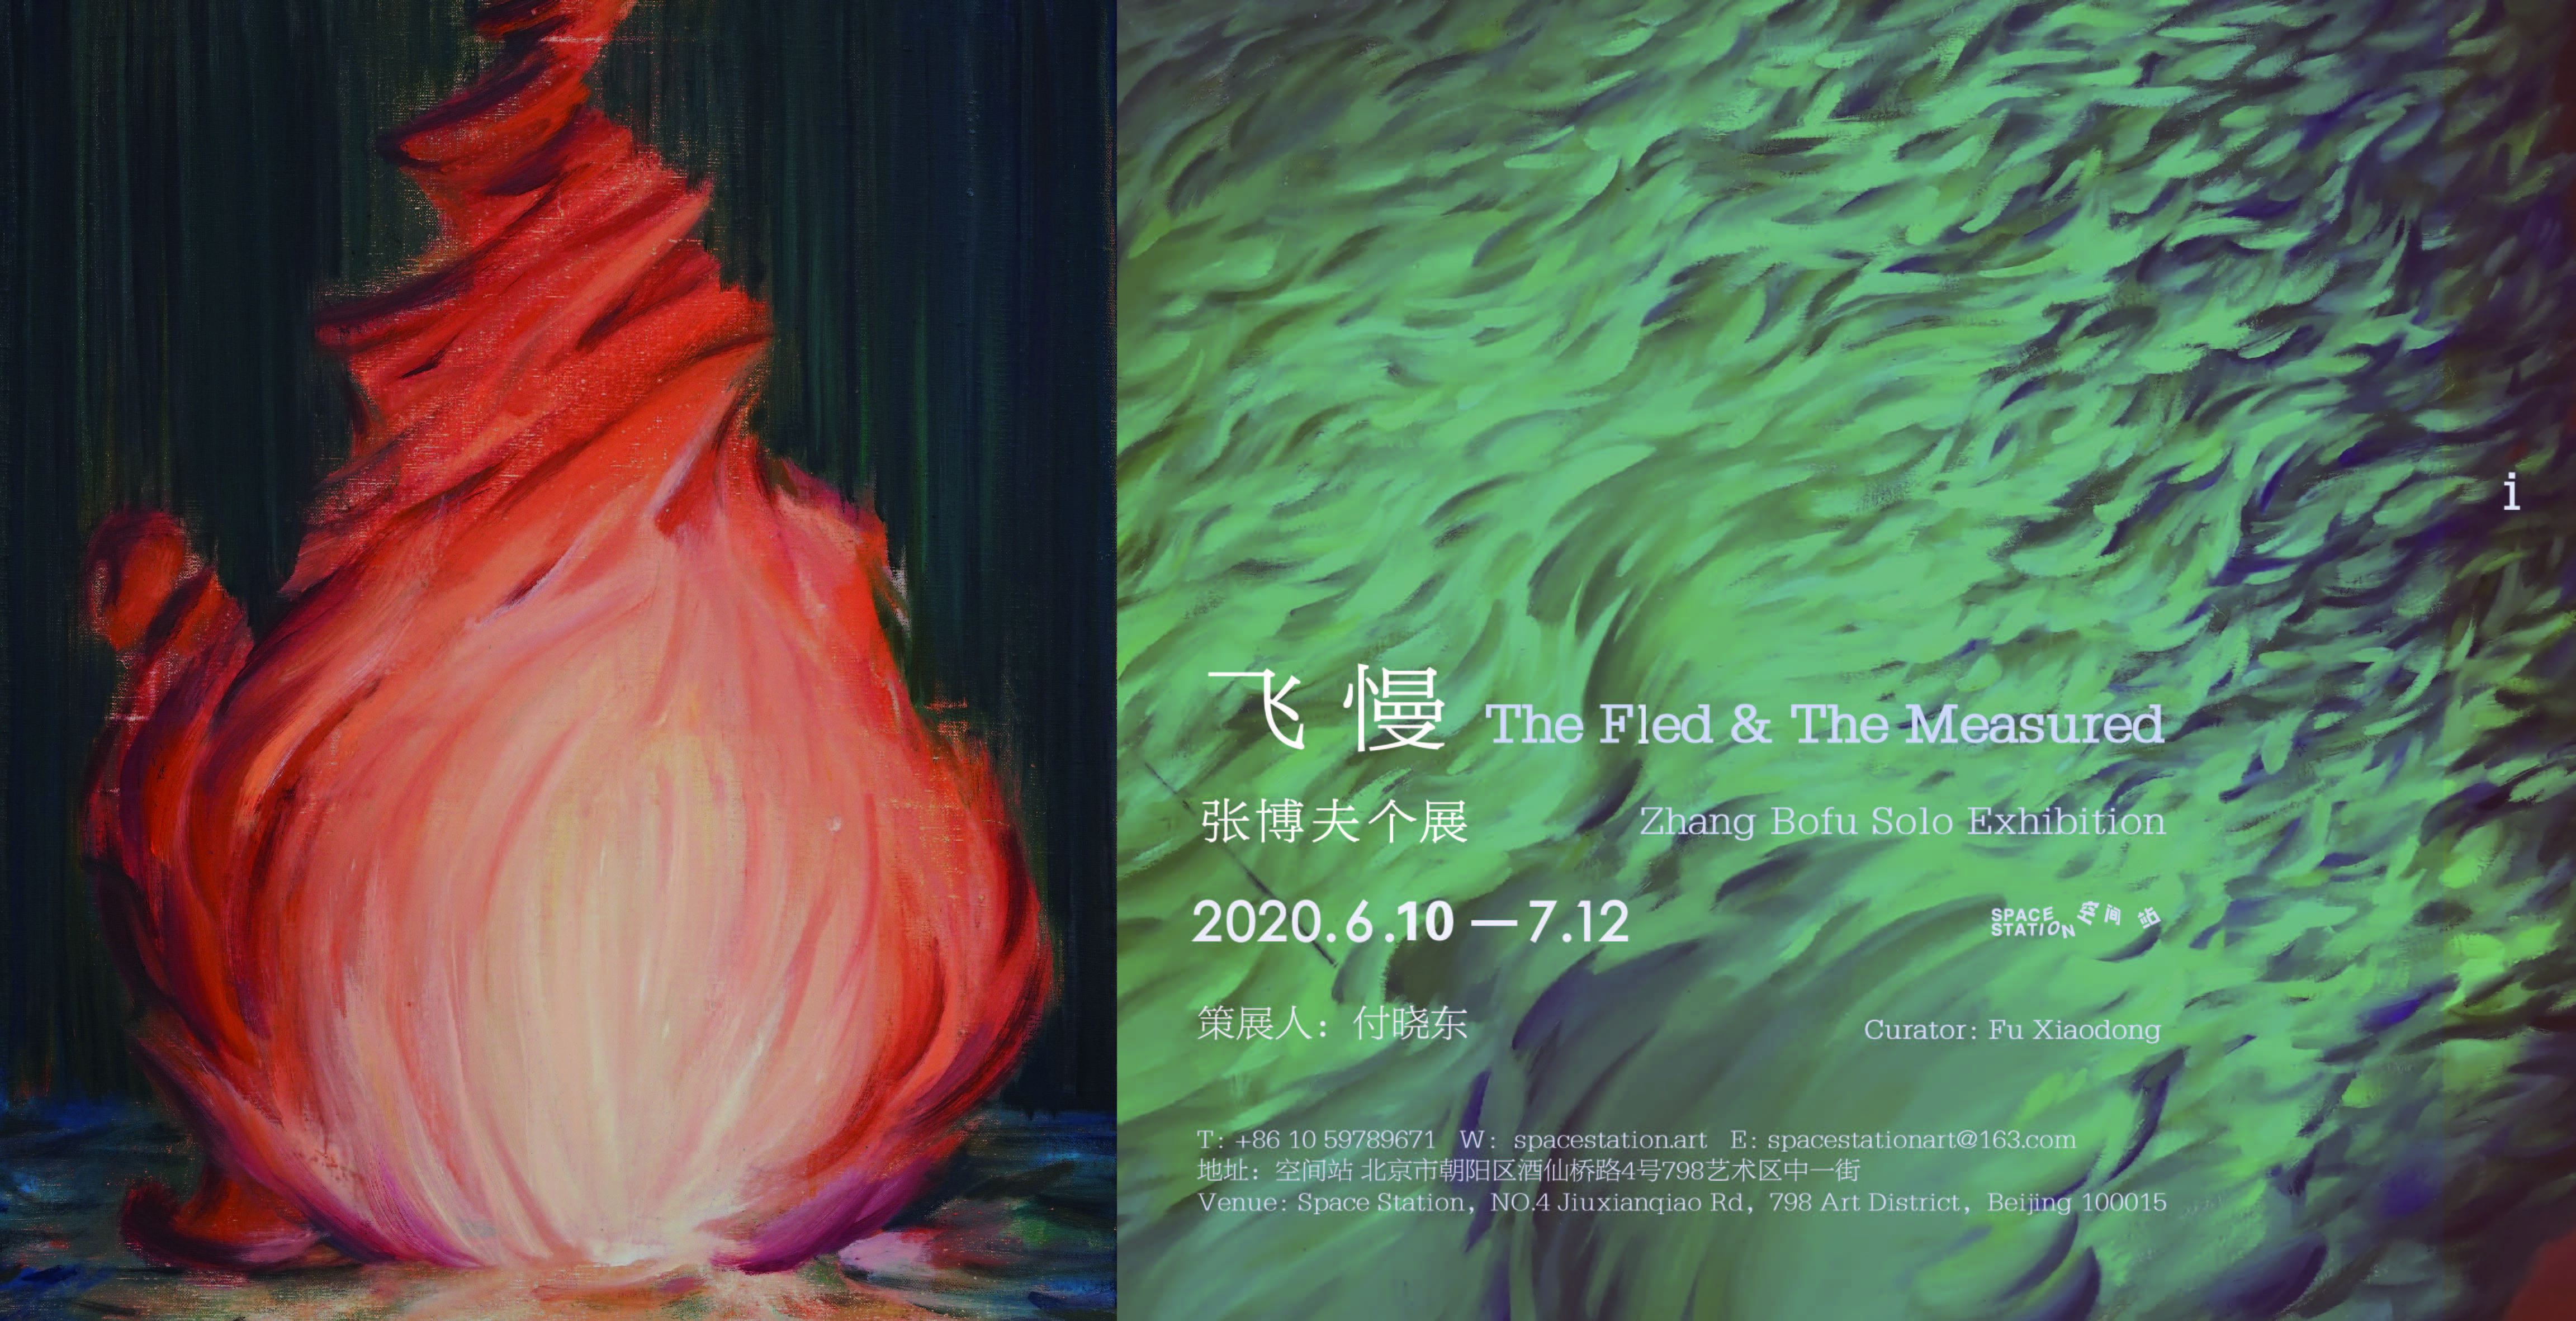 张博夫个展 — 飞慢 Zhang Bofu Solo Exhibition — The Fled & the Measured